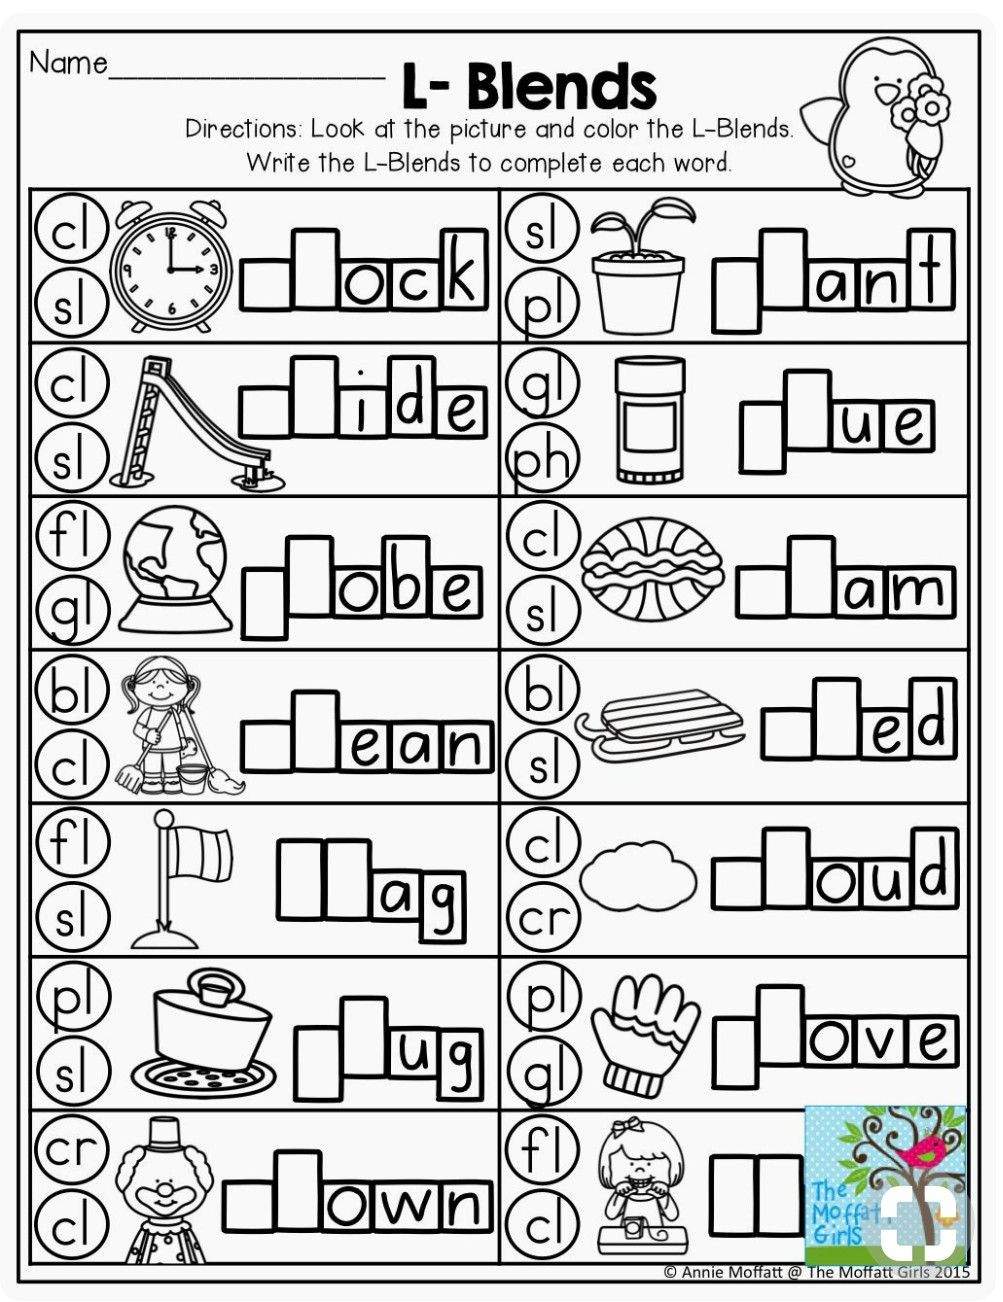 Digraph Worksheets for First Grade Worksheet Awesome 1st Grade Phonicsrksheets Image Ideas